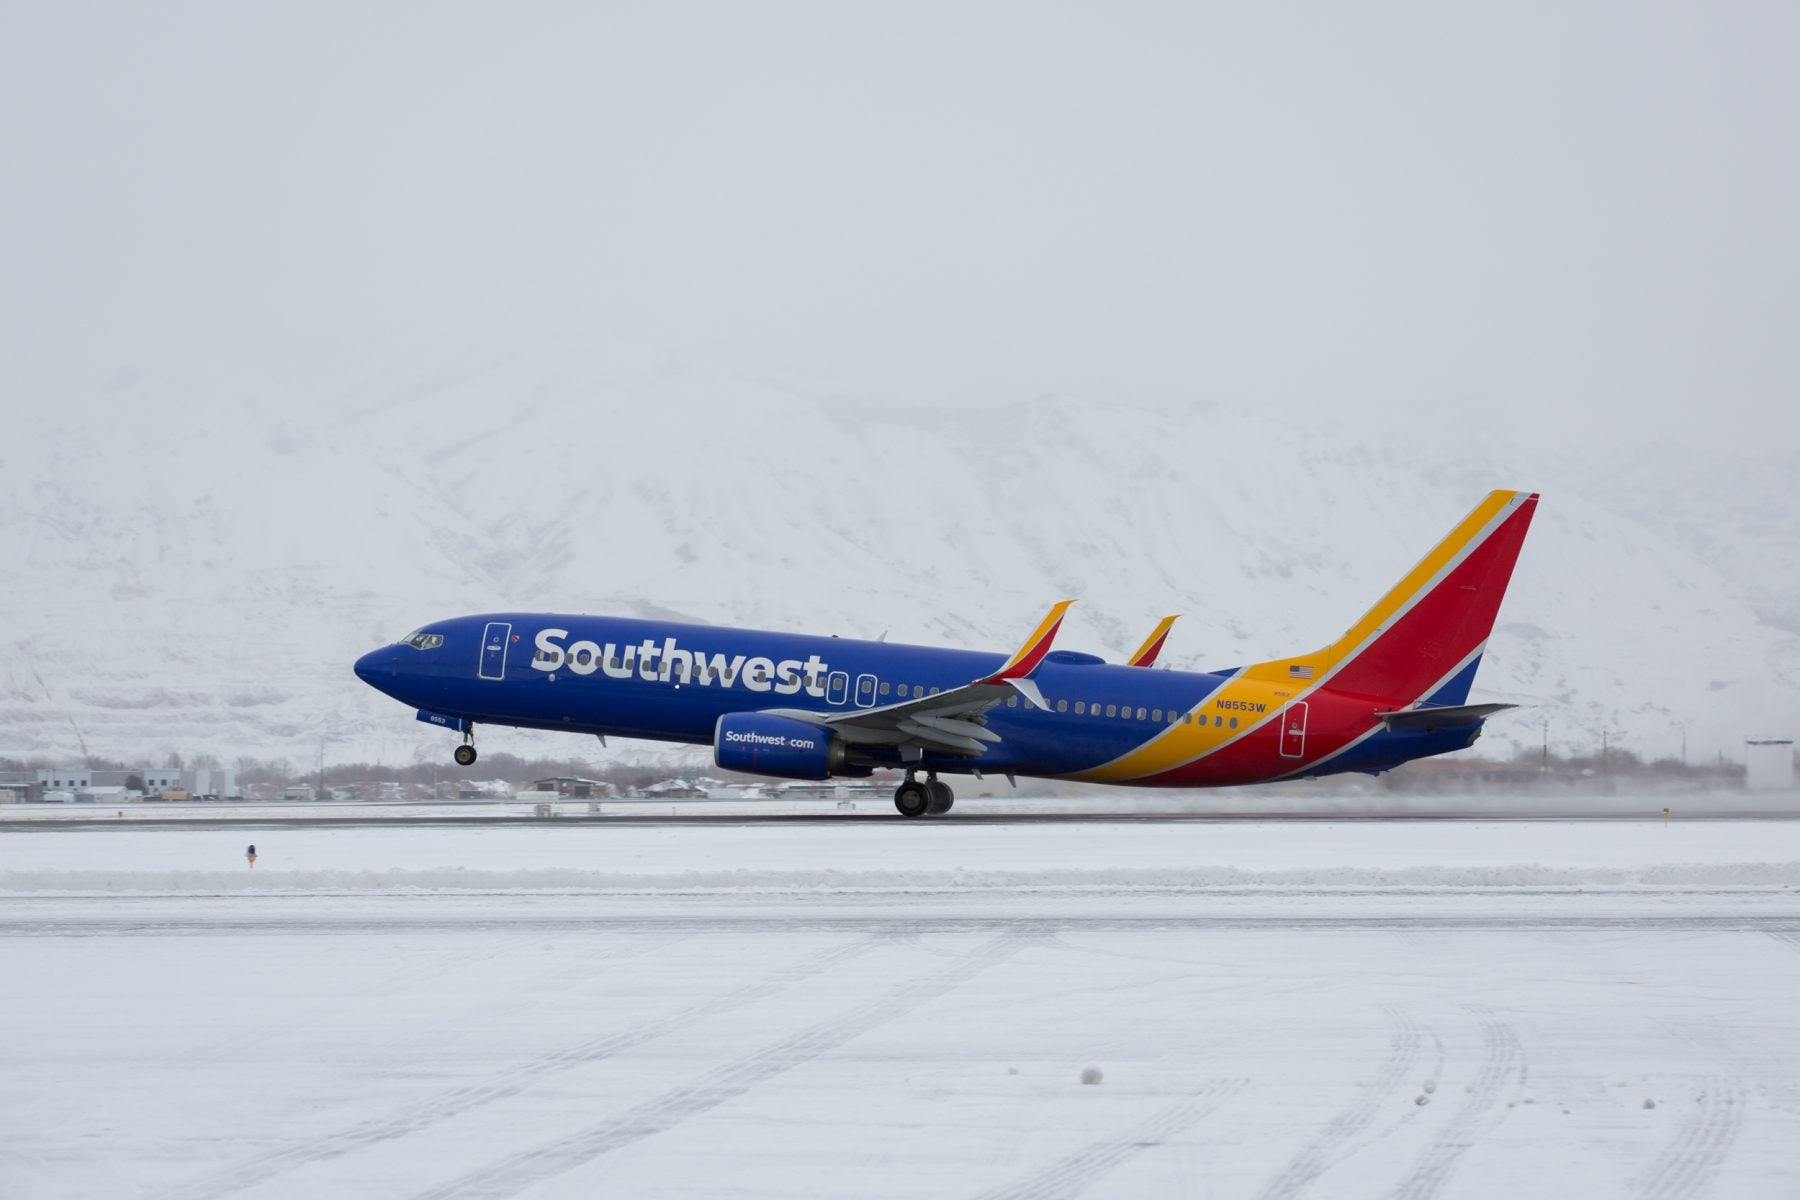 The Top 10 Best Benefits and Perks of the Chase Southwest Business Card Make It a Long-Term Keeper